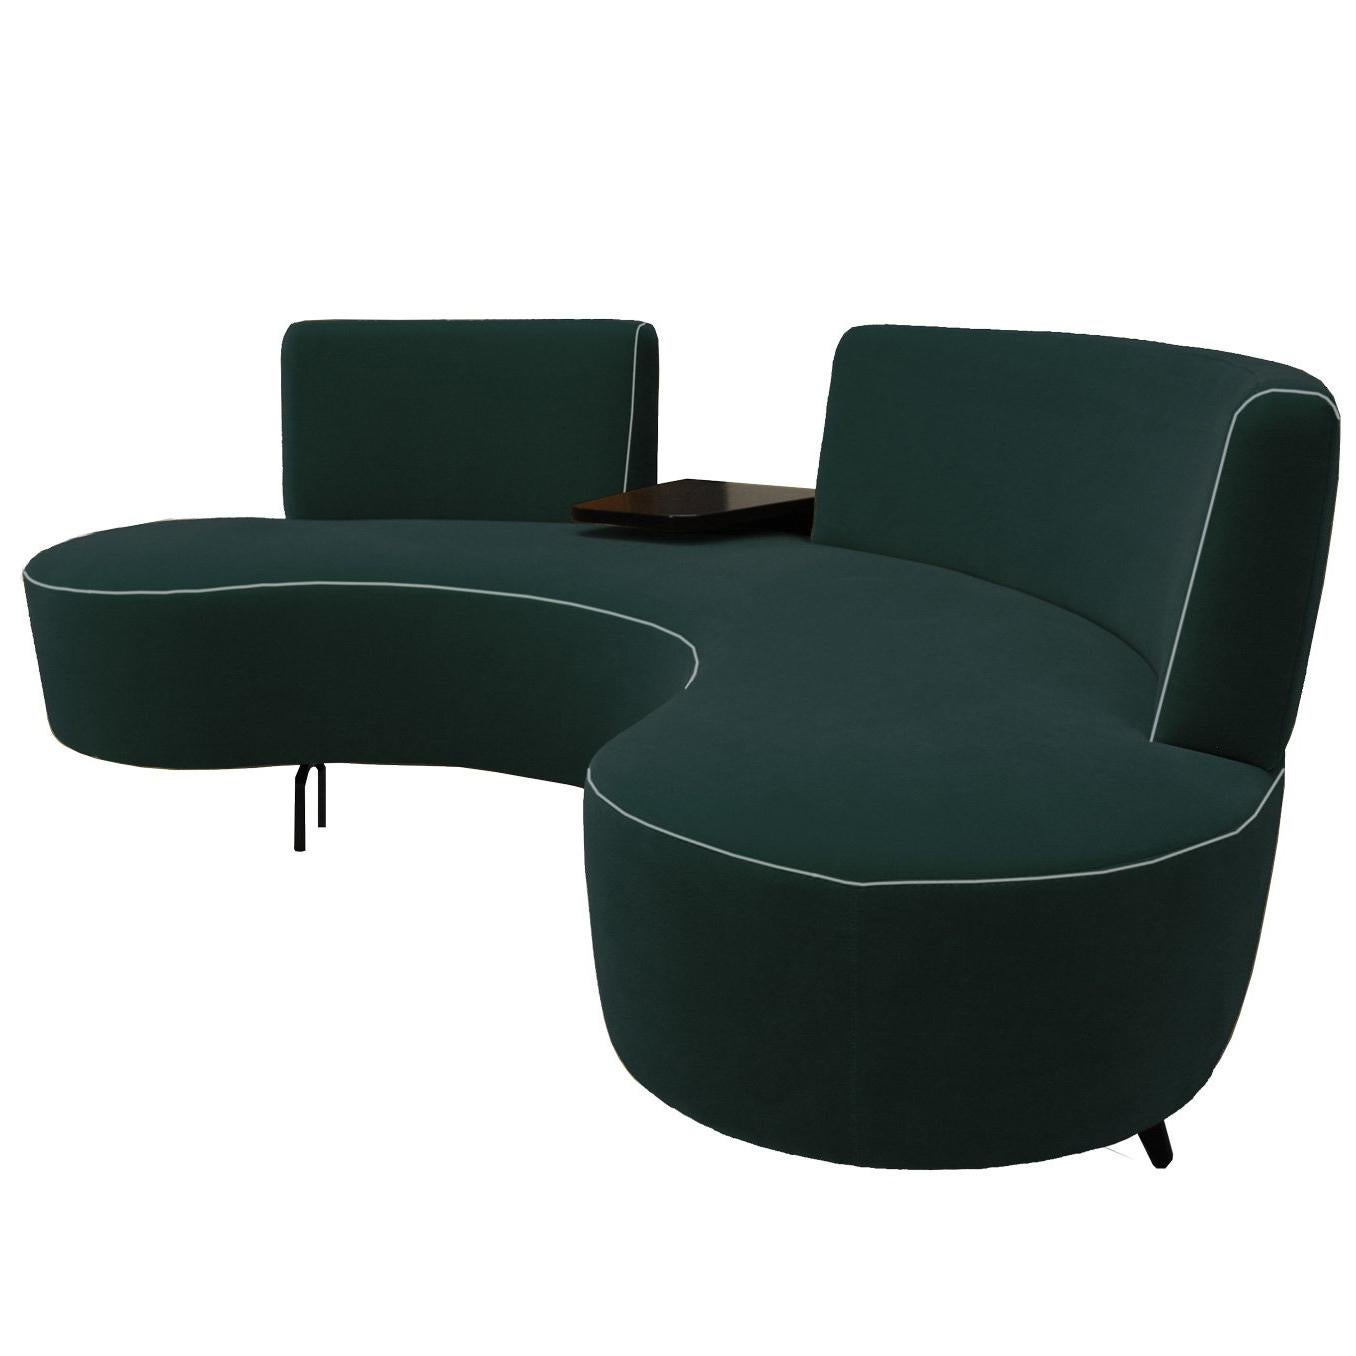 Strange Italian Design 1950 Cozy Curved Sofa New Covered With Dedar Green Velvet Onthecornerstone Fun Painted Chair Ideas Images Onthecornerstoneorg